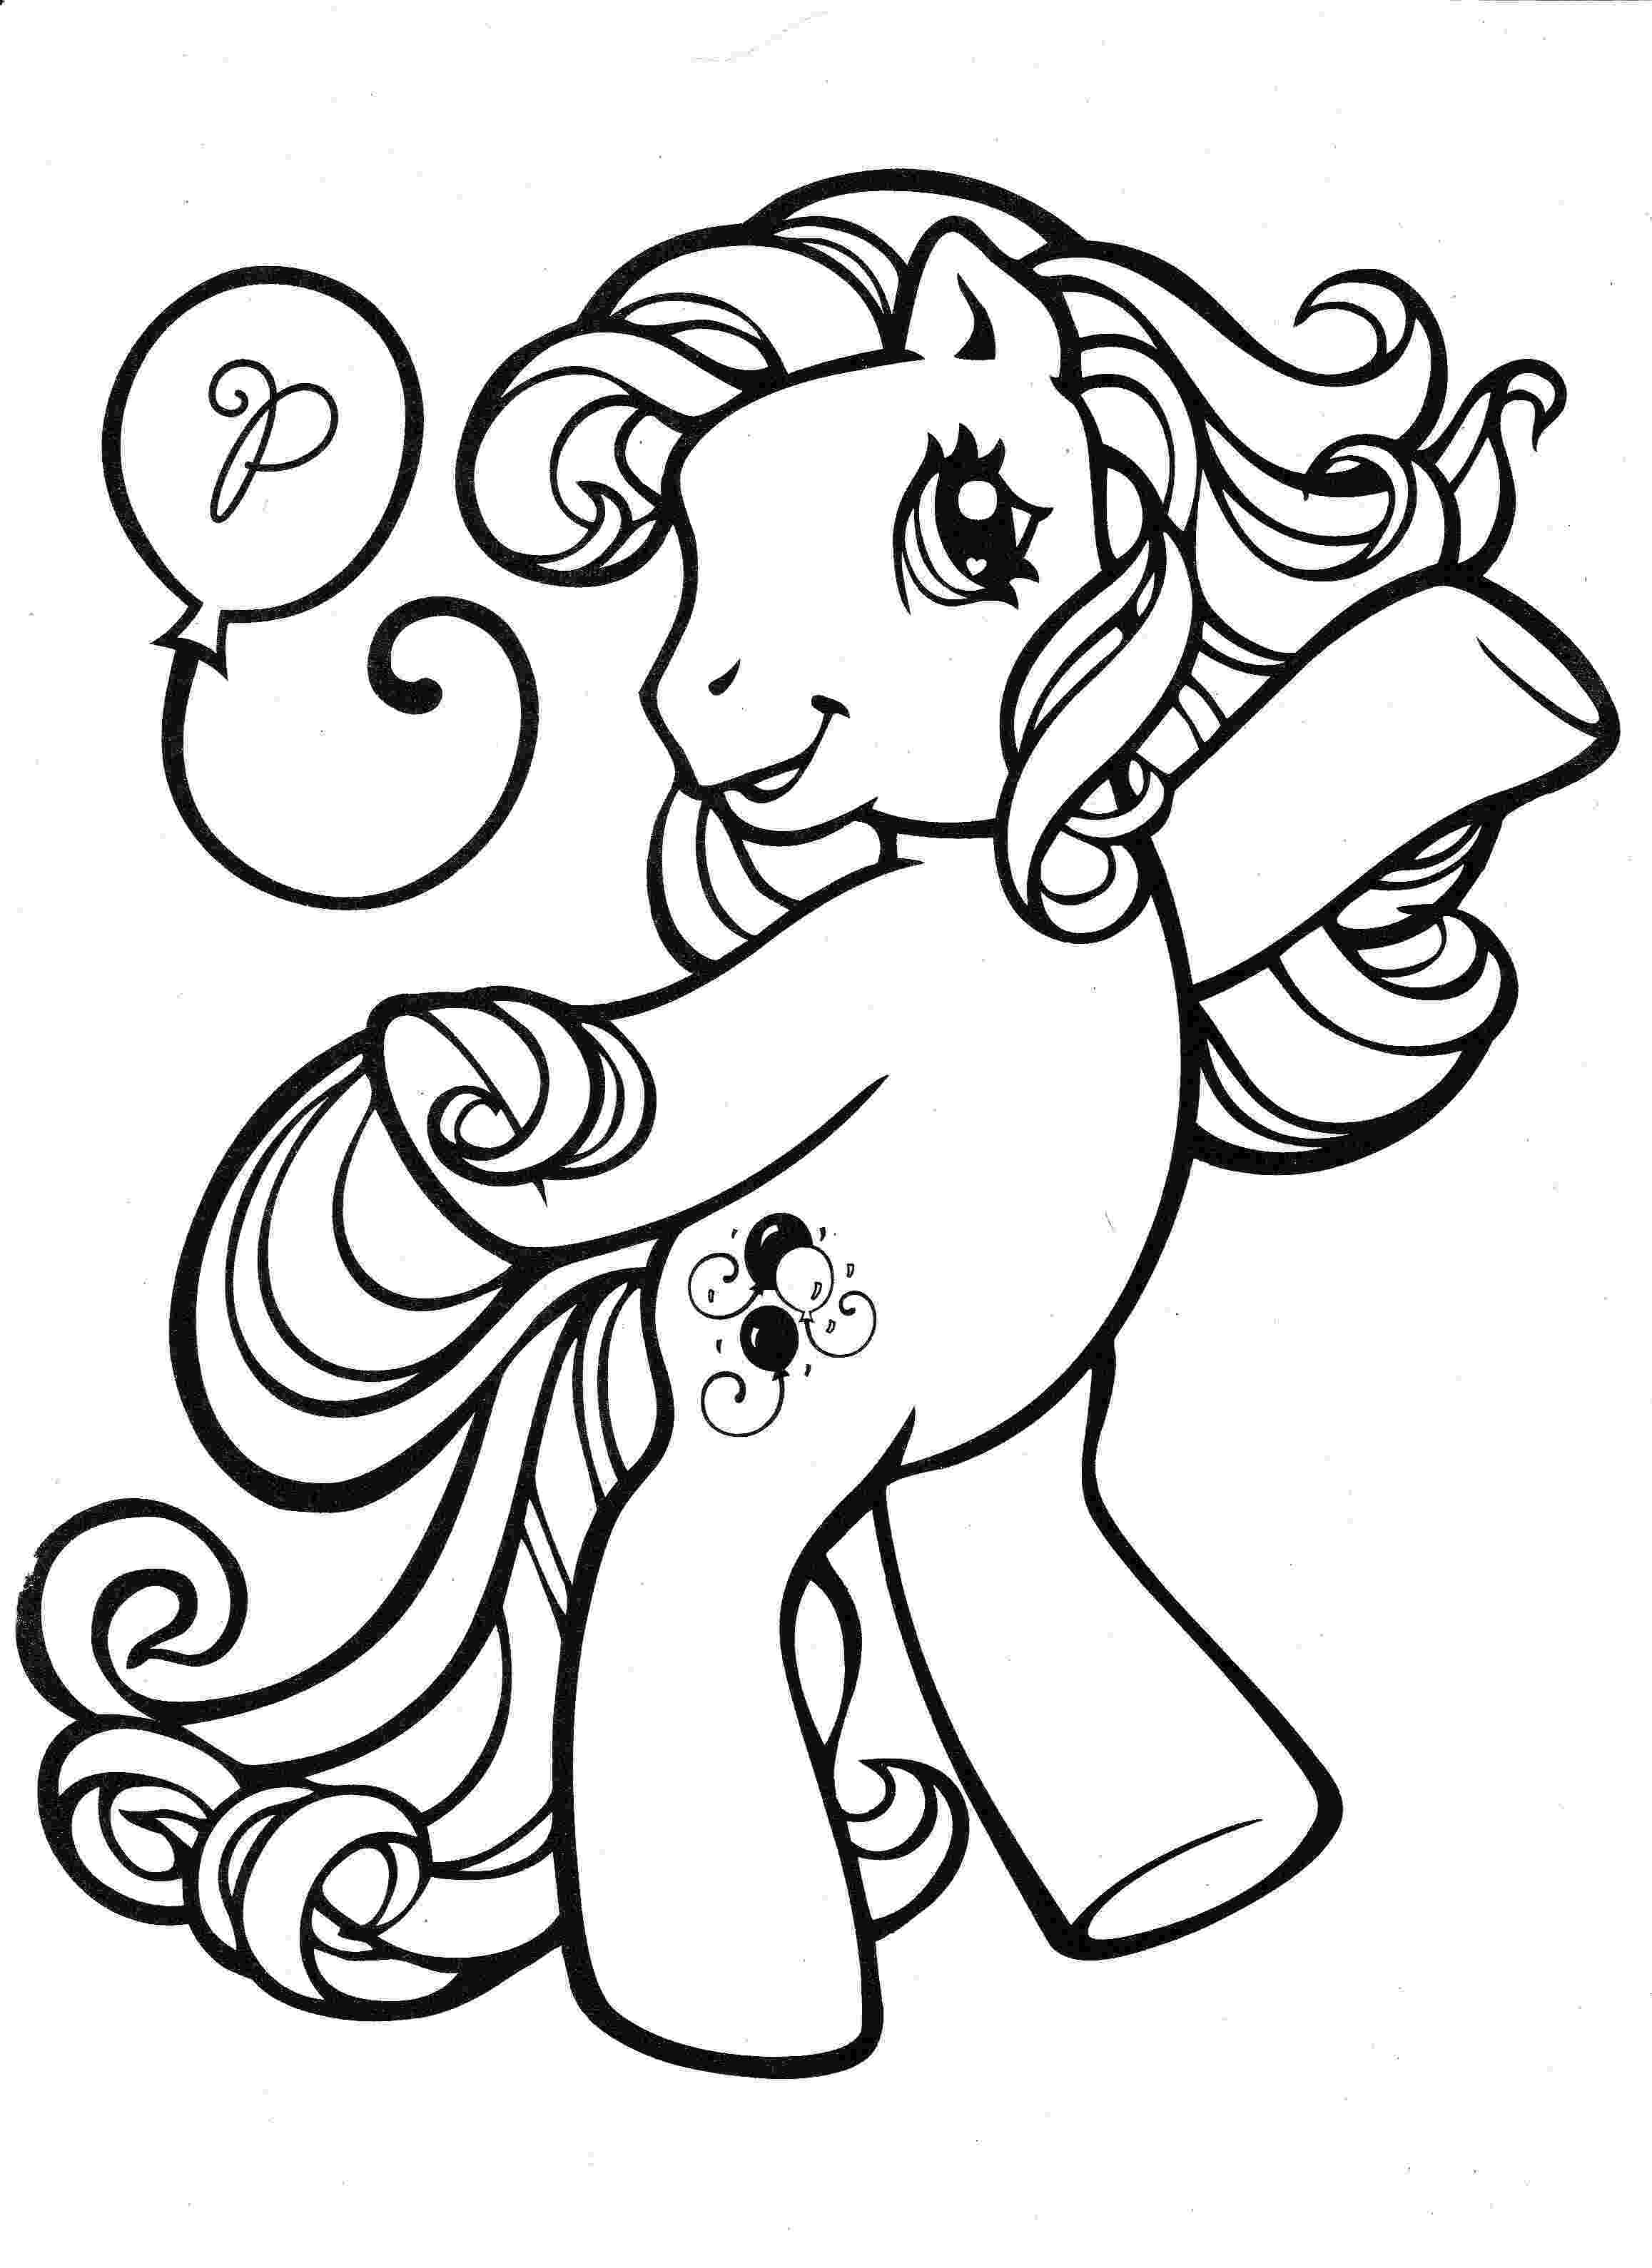 coloring pages of ponies free printable my little pony coloring pages for kids ponies of pages coloring